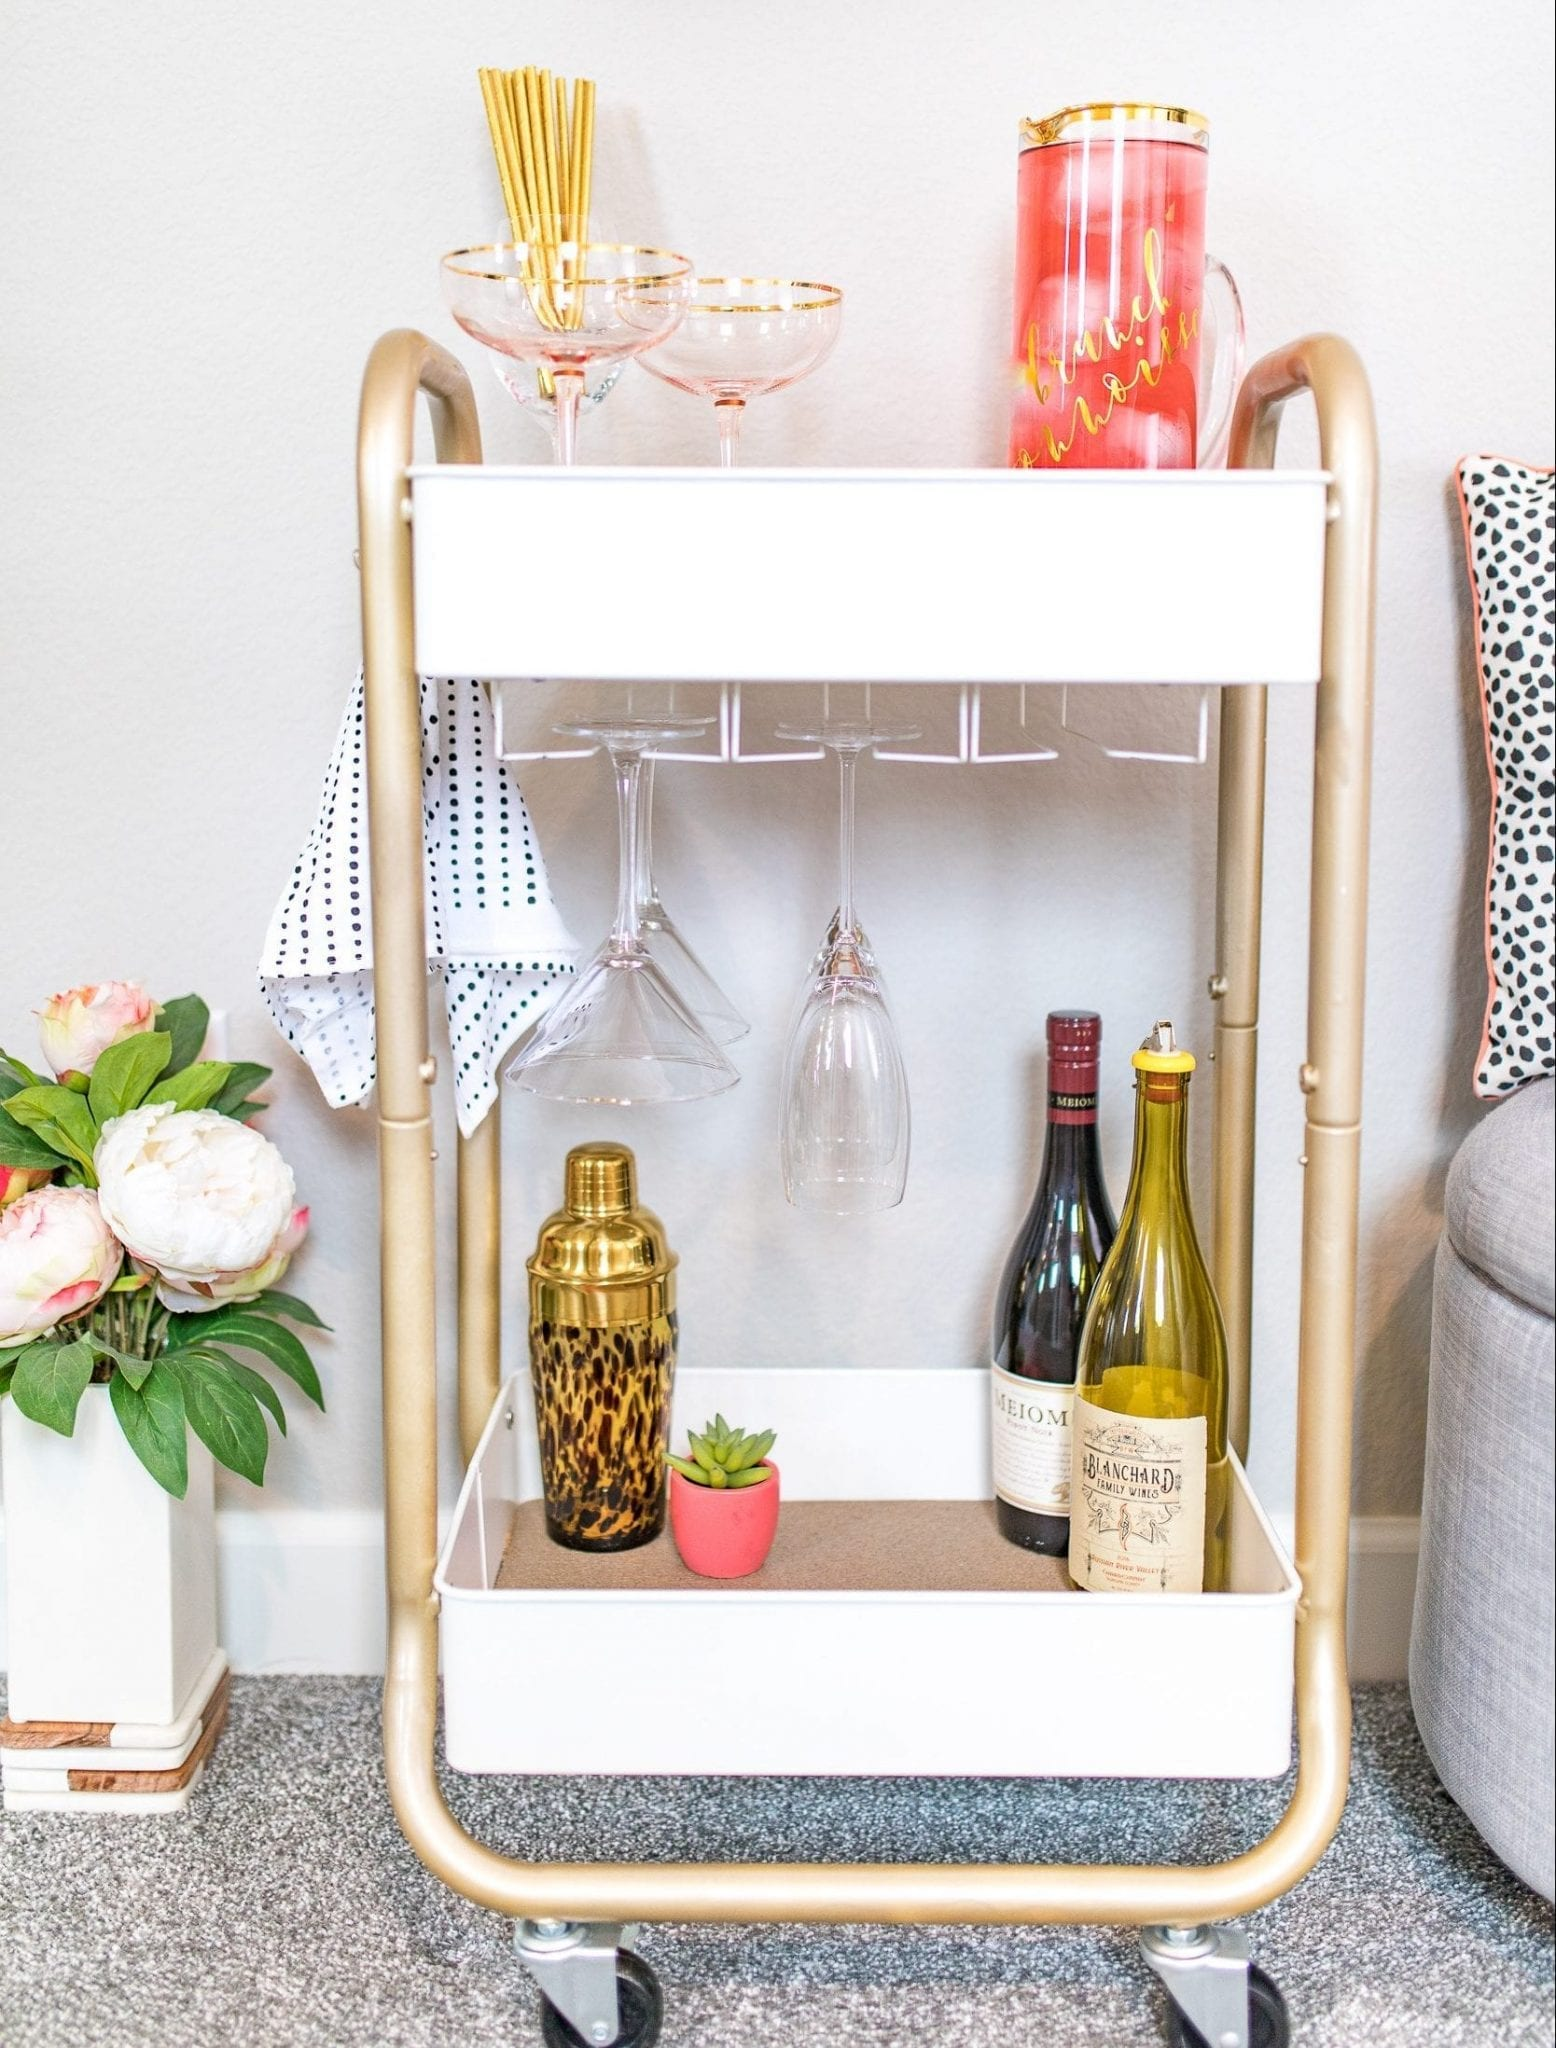 bar cart diy | bar cart diy metal | bar cart diy before and after | bar cart styling ideas | bar cart ideas | bar cart ideas DIY | Never Skip Brunch by Cara Newhart | #Brunch #DIY #barcart #neverskipbrunch